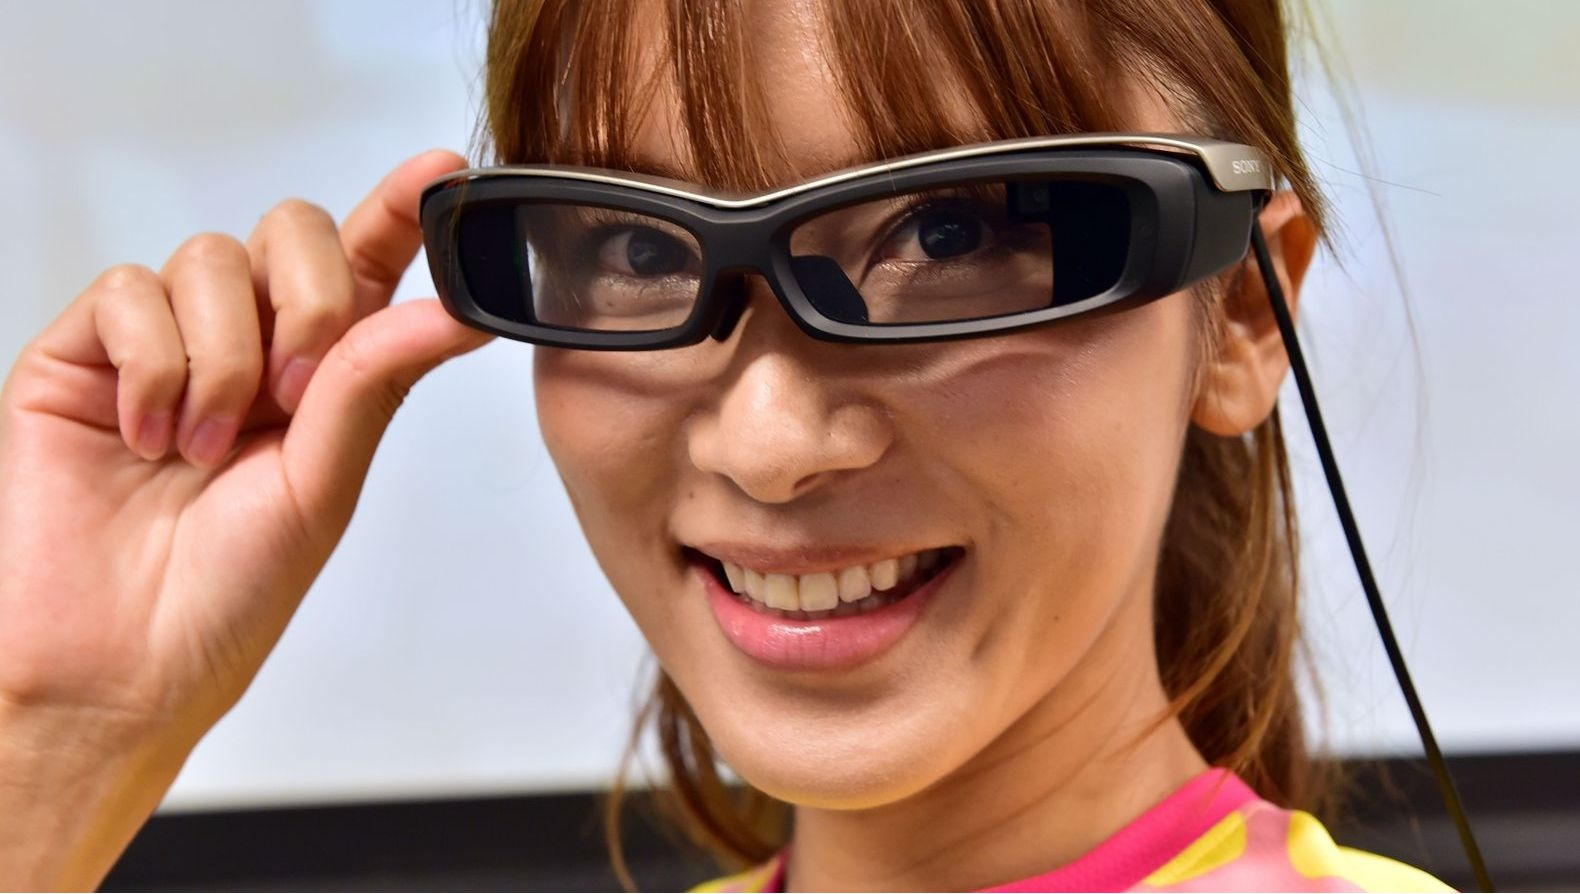 Sony SmartEyeGlass heads towards reality